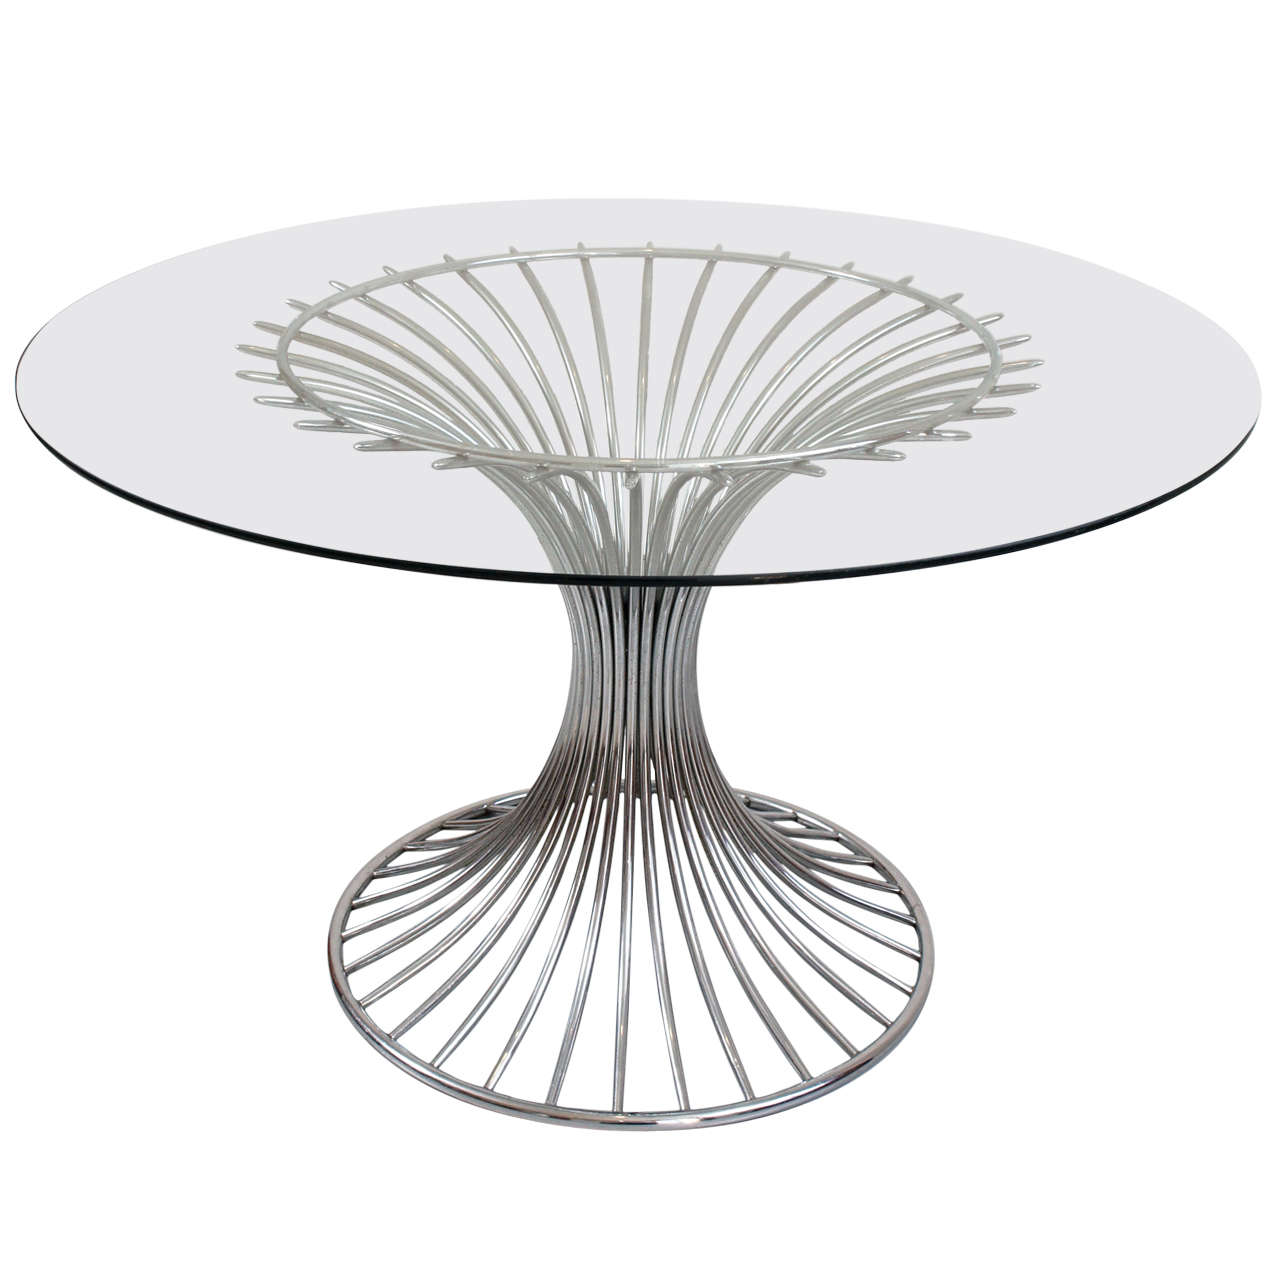 Mid 20th century chrome and glass top round dining table for Round glass and chrome dining table